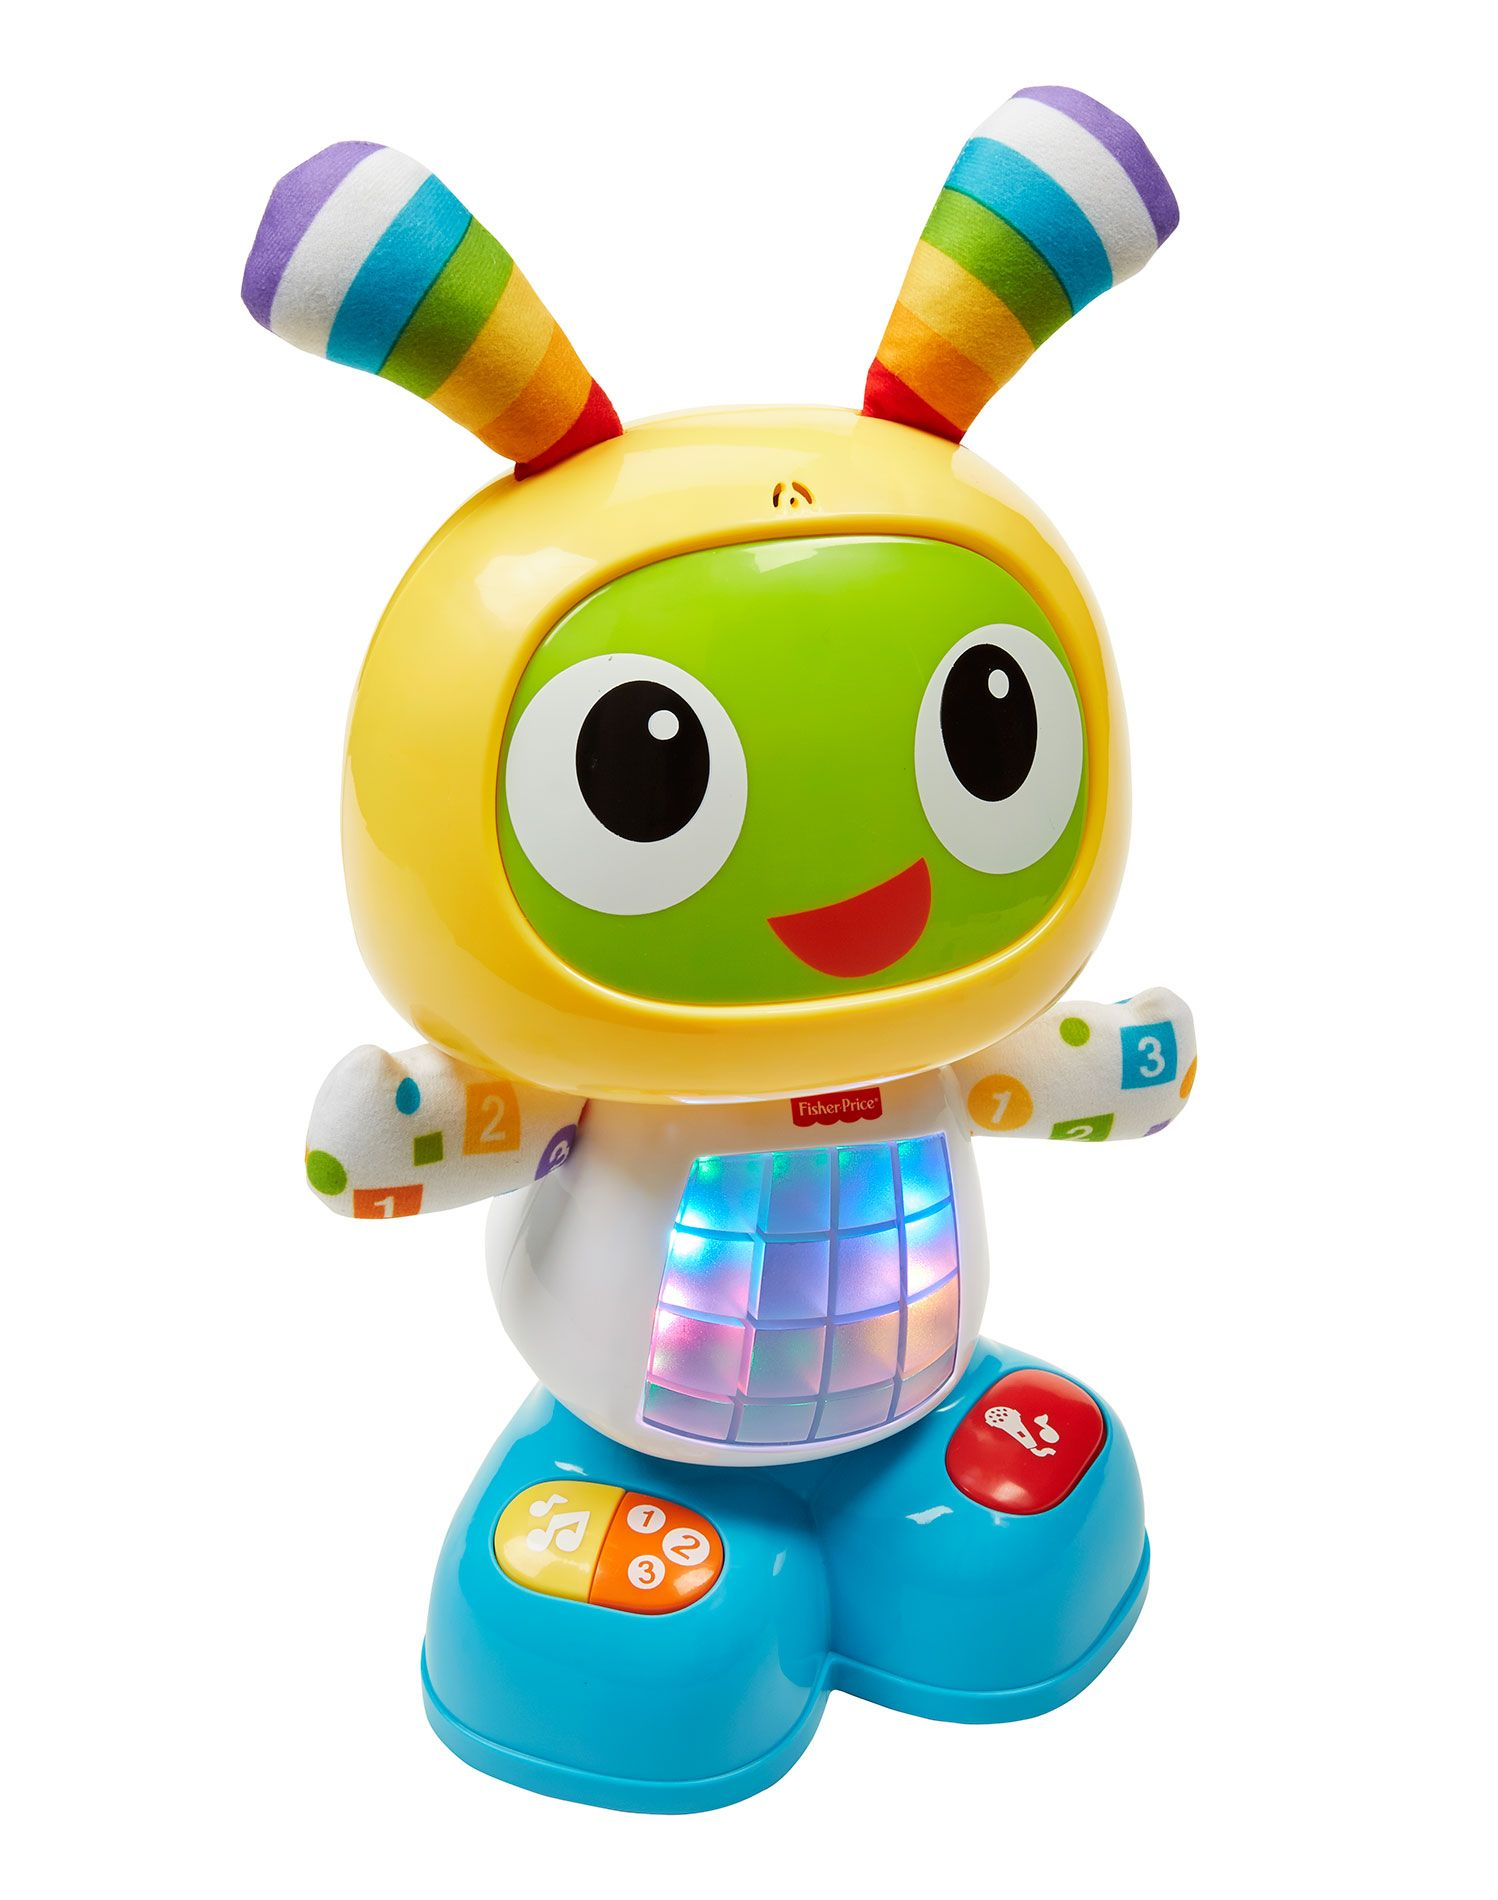 BeatBo is an adorable animatronic pal that encourages baby to get up and move, and helps teach baby too! A press of BeatBo's tummy or any of the buttons on his feet activates fun songs, learning content and dance moves. This futuristic friend even allows mommy or baby to record a phrase, and he'll remix it into his favorite song! His 3 modes - Dance 'n Move, Learning & Games, and Customized Sing-Along -